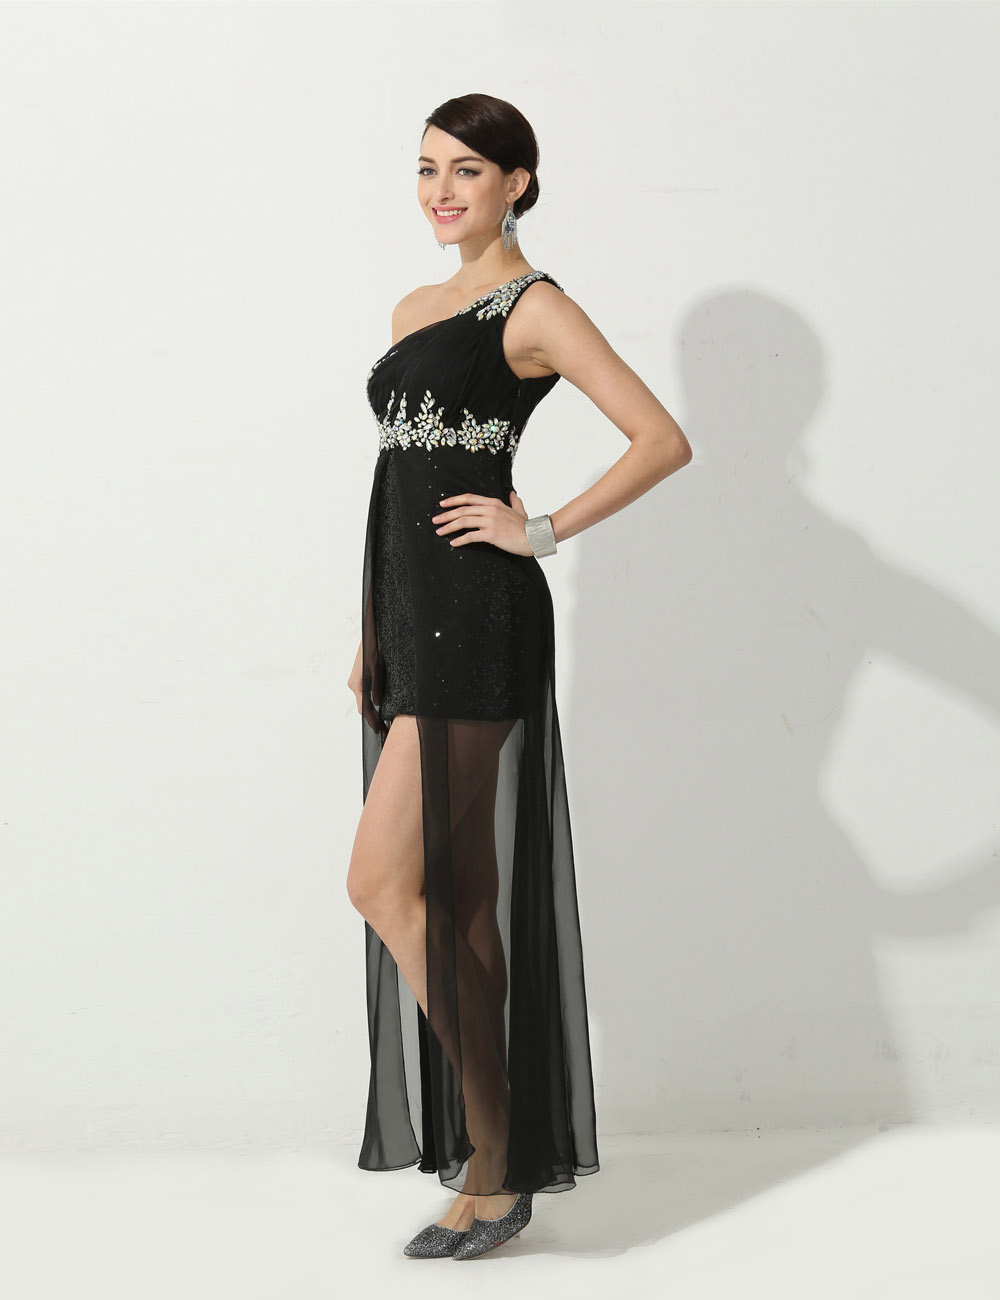 Trumpet/Mermaid Sheath/Column Sweetheart Floor-length Chiffon Evening Dress